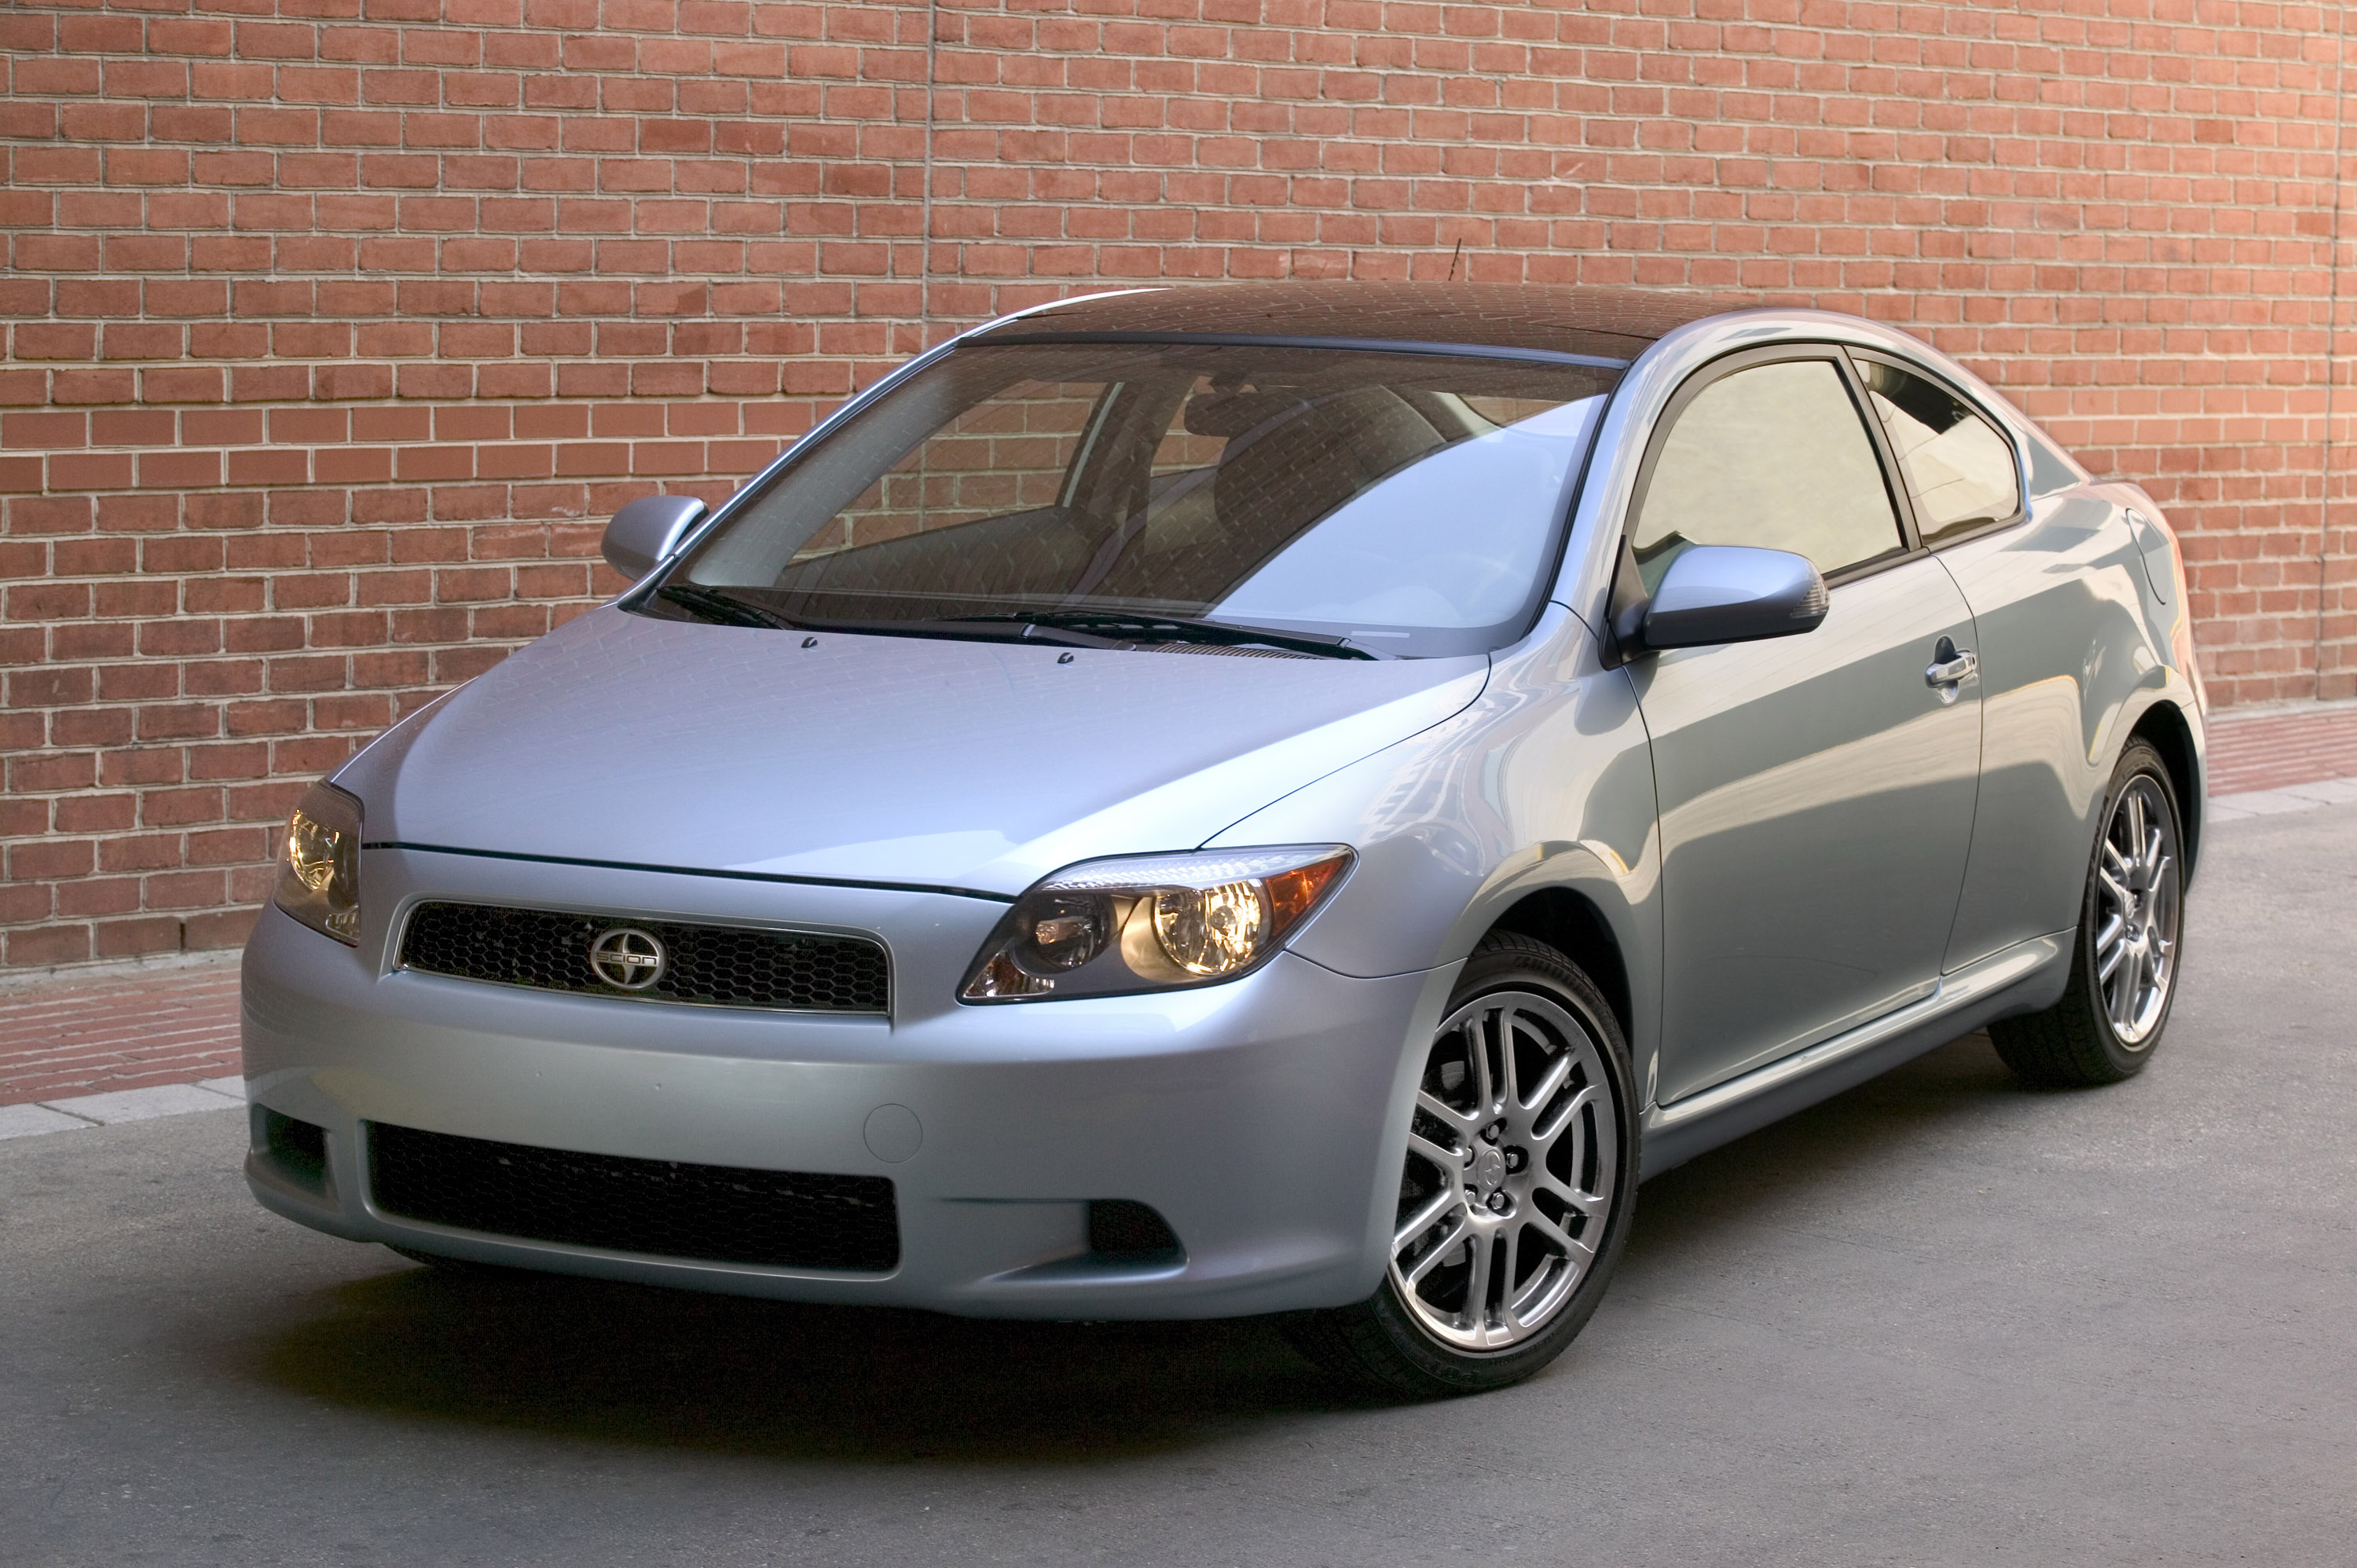 Scion Brand To Transition To Toyota